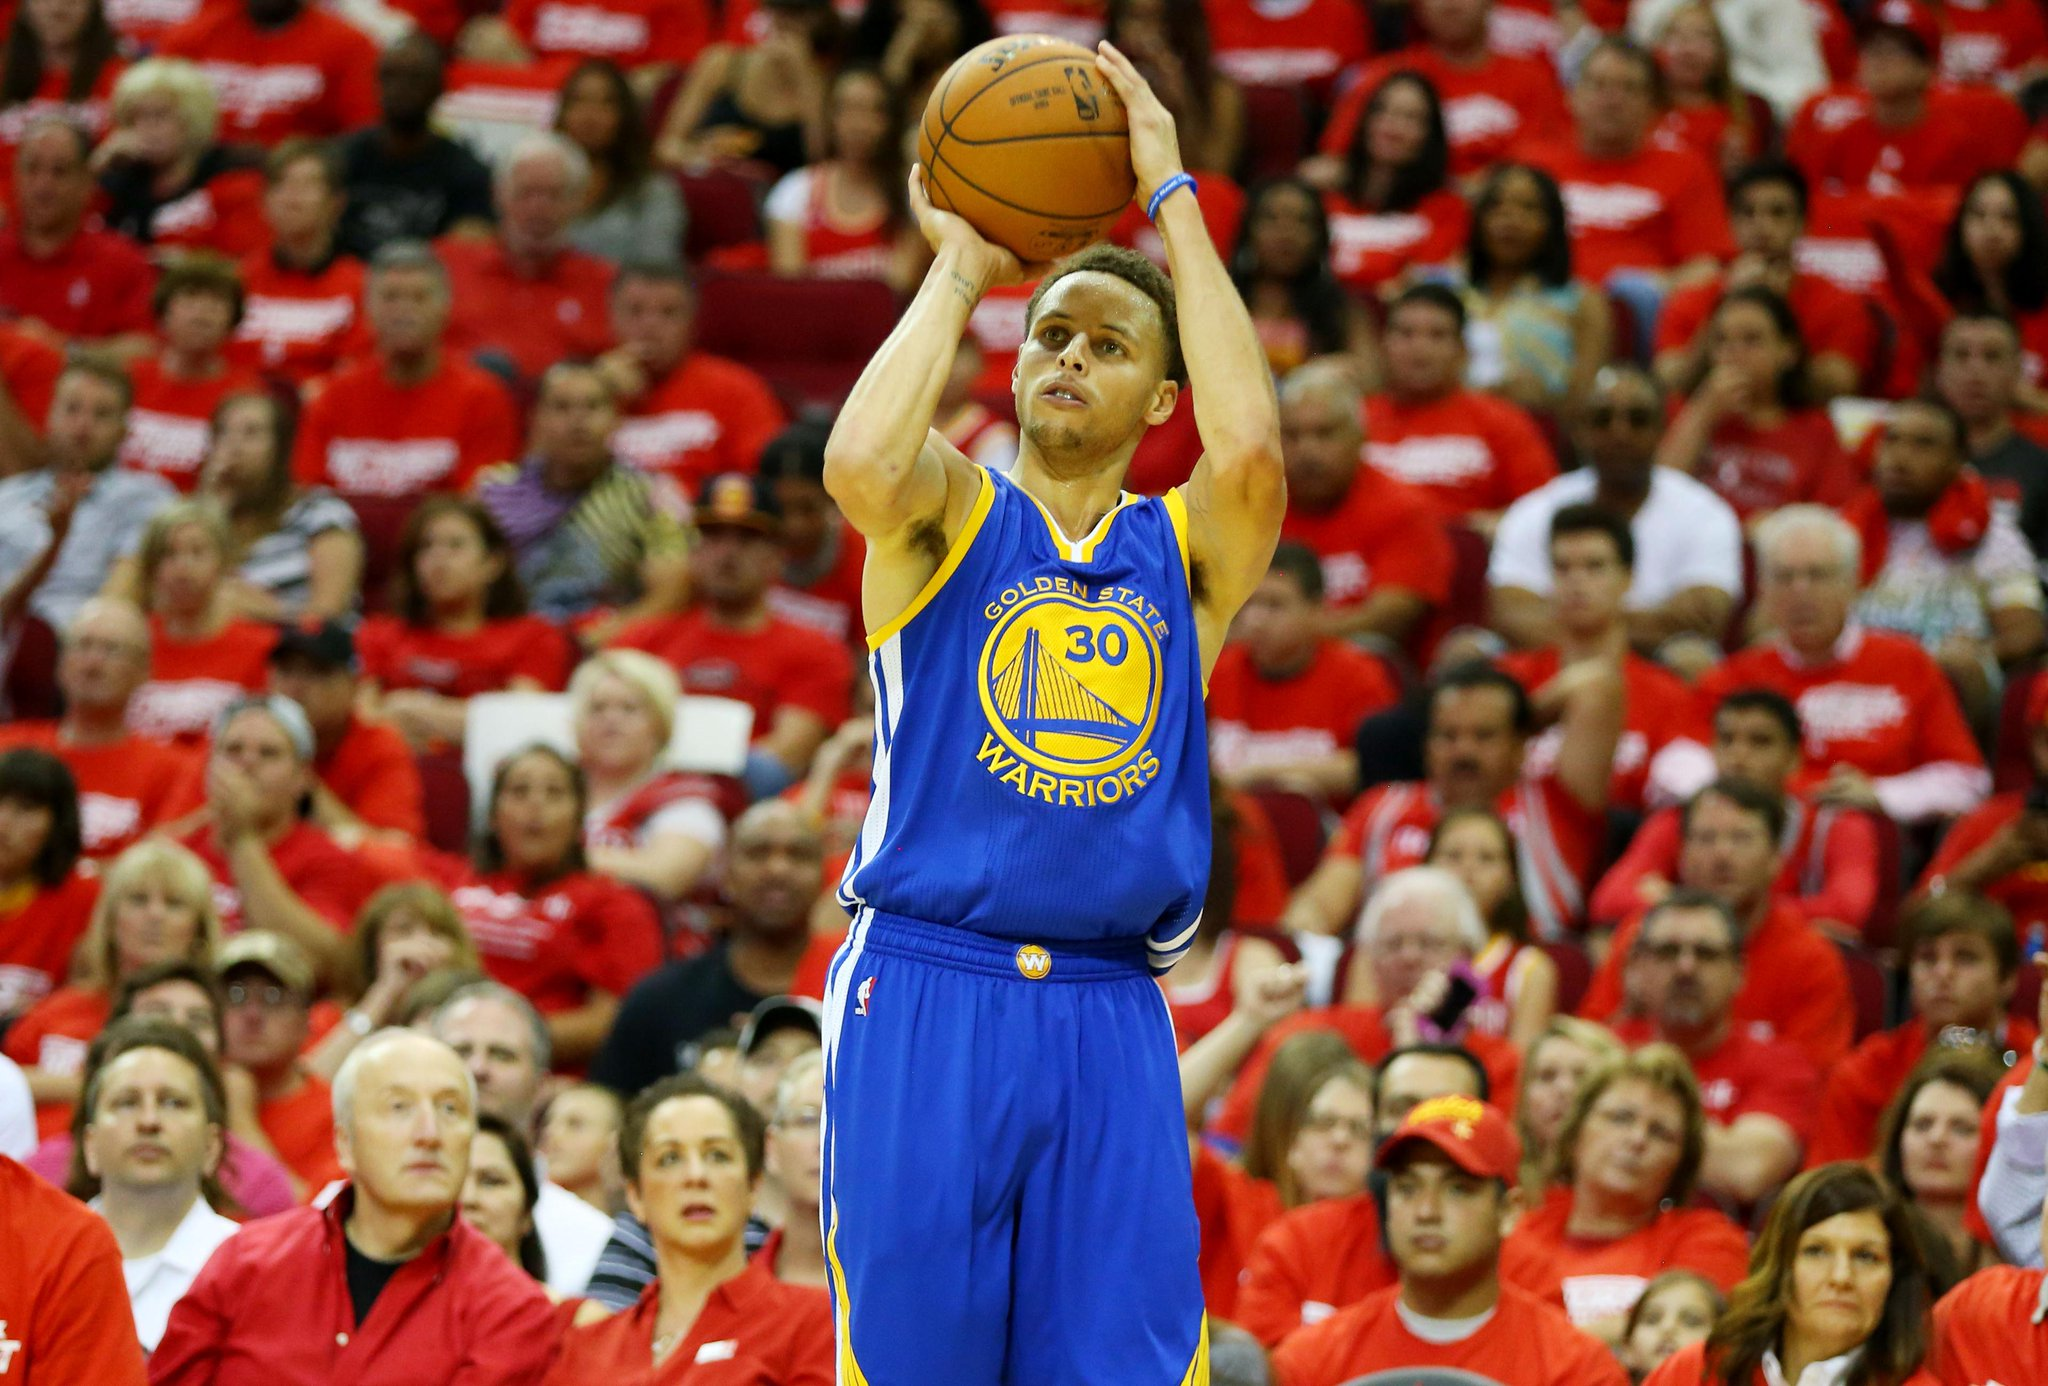 40 points, 7 assists, & 5 rebounds as Stephen Curry goes to the bench late in the 4th quarter. http://t.co/kWCHkF0GCf